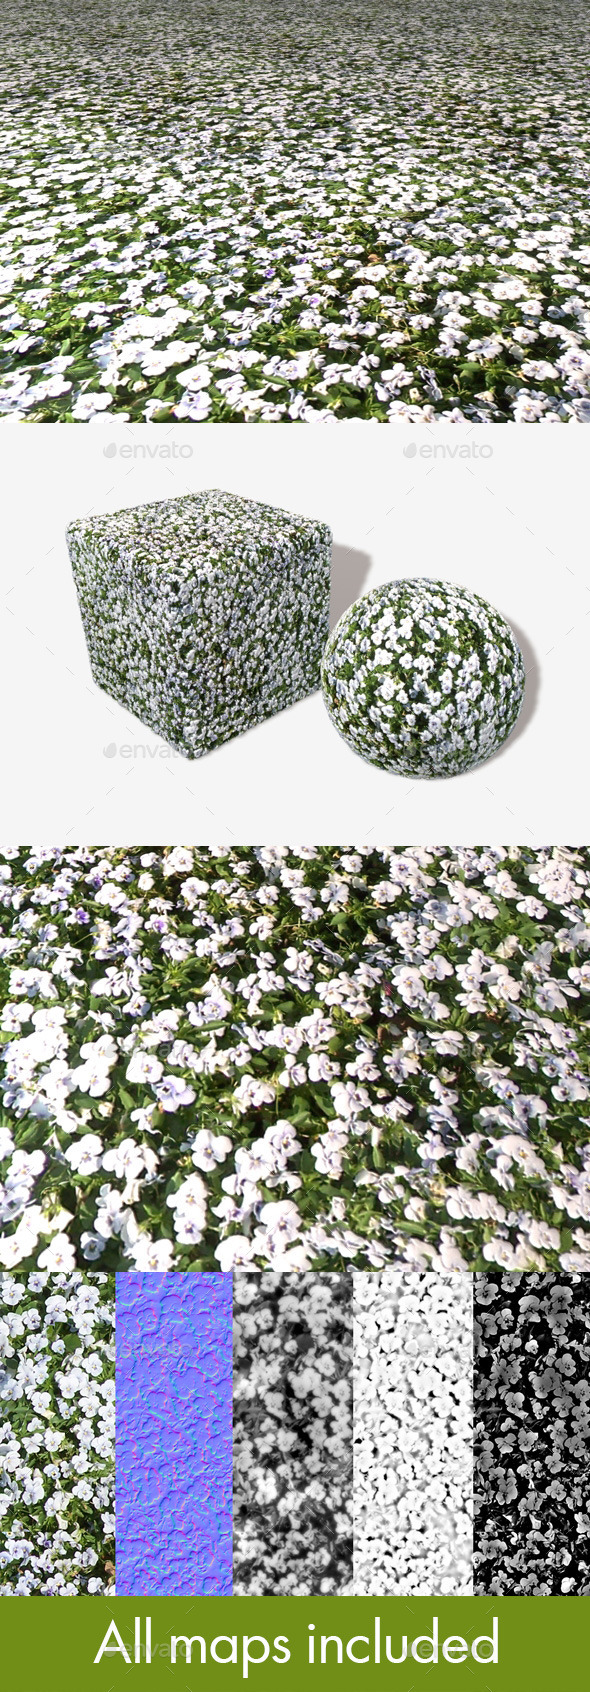 White Flowerbed Seamless Texture - 3DOcean Item for Sale